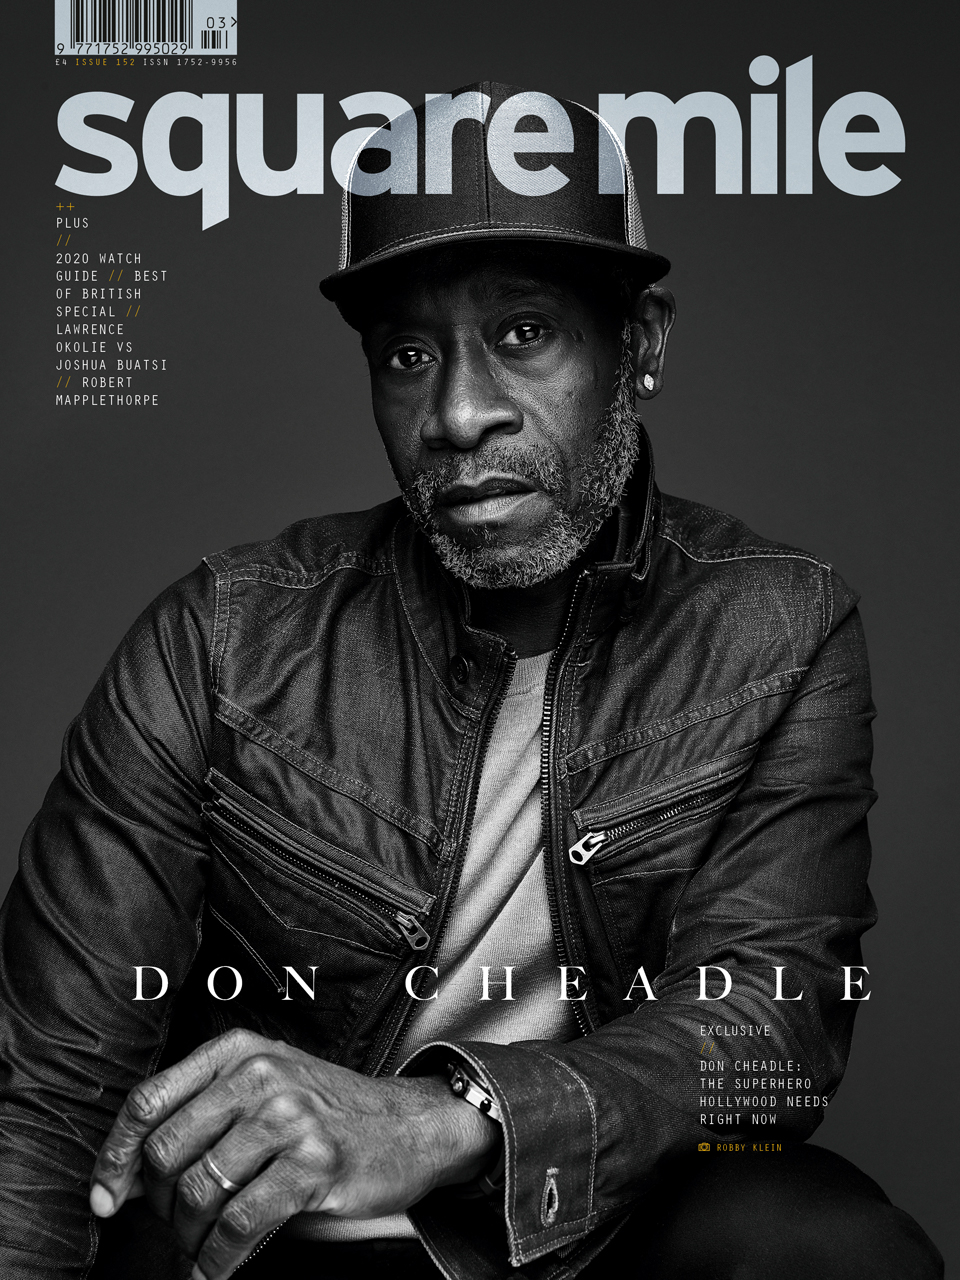 Don Cheadle photographed by Robby Klein / Contour